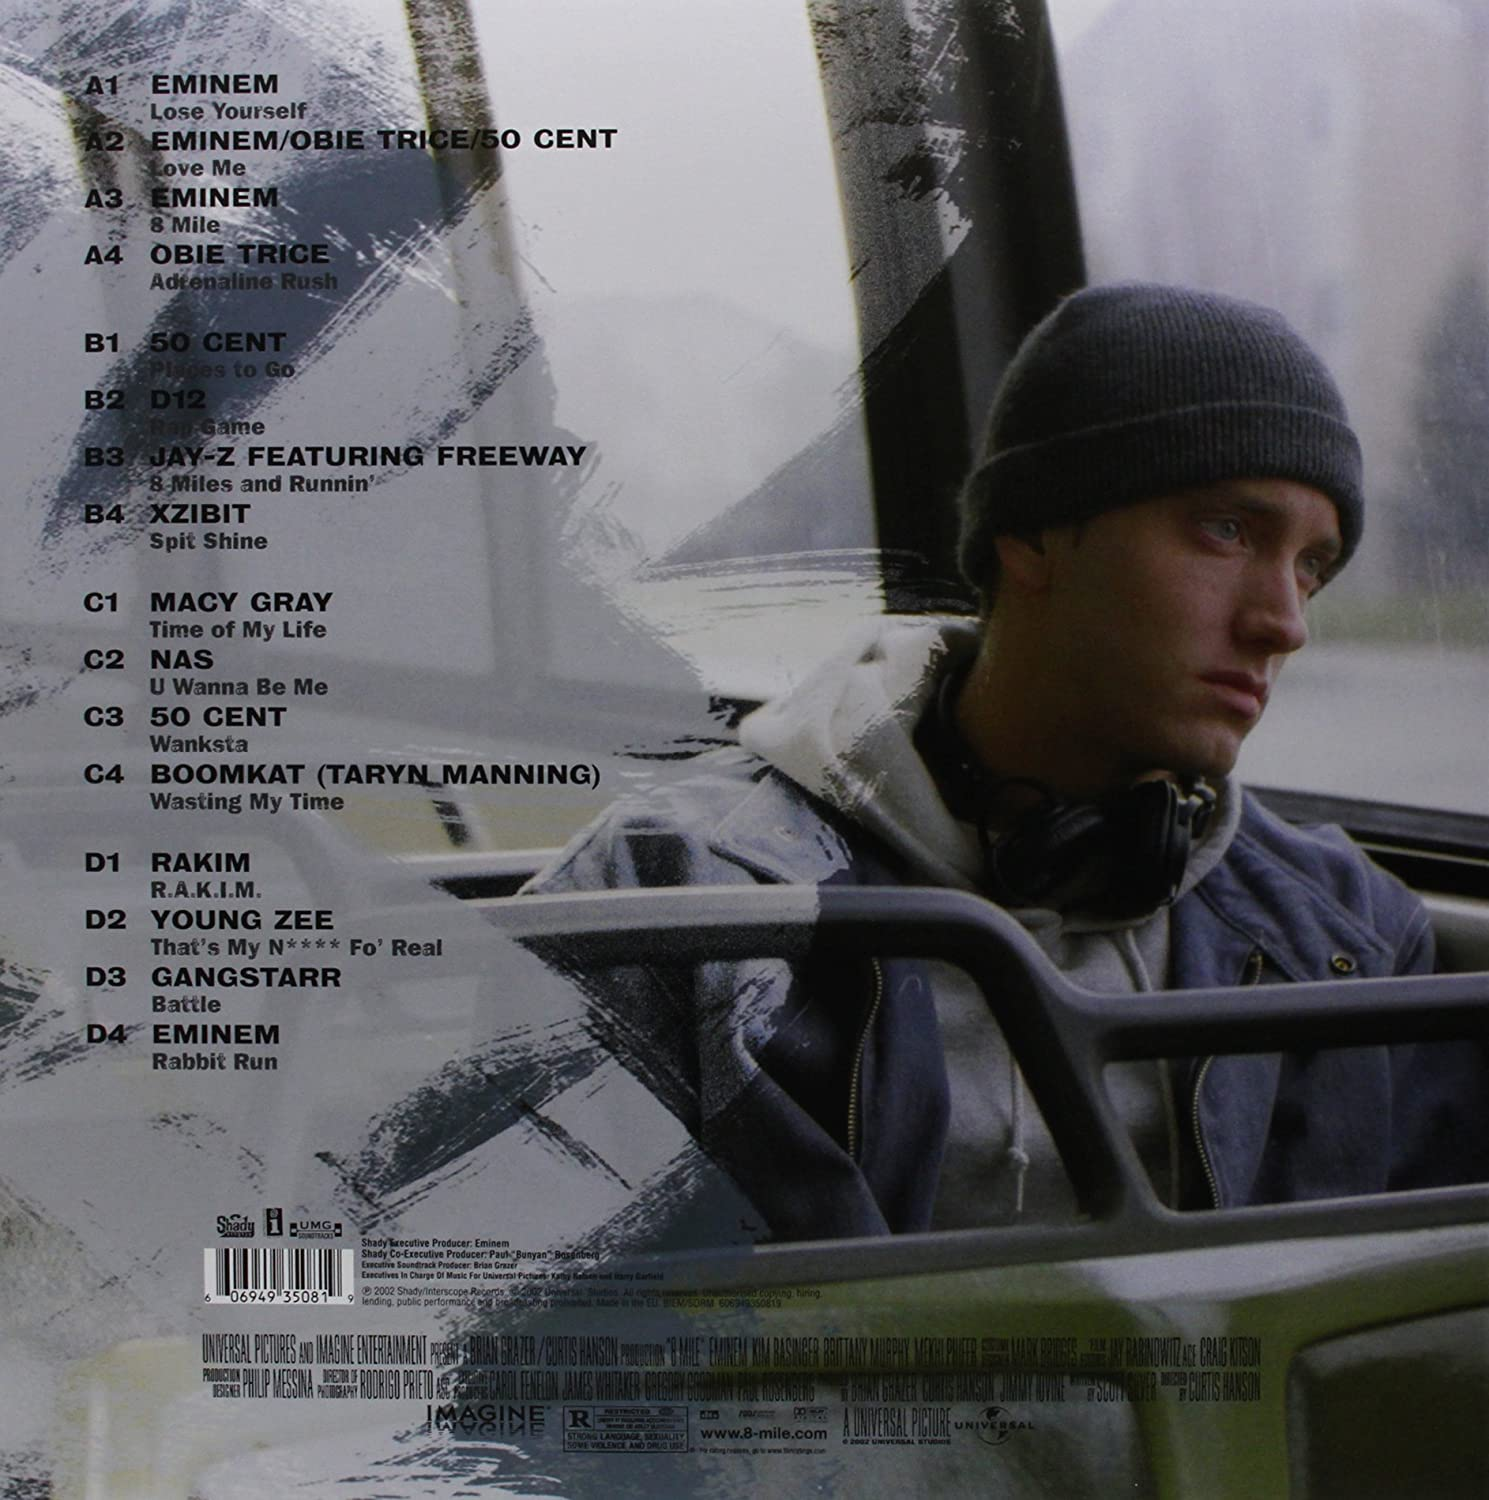 8 mile soundtrack album download